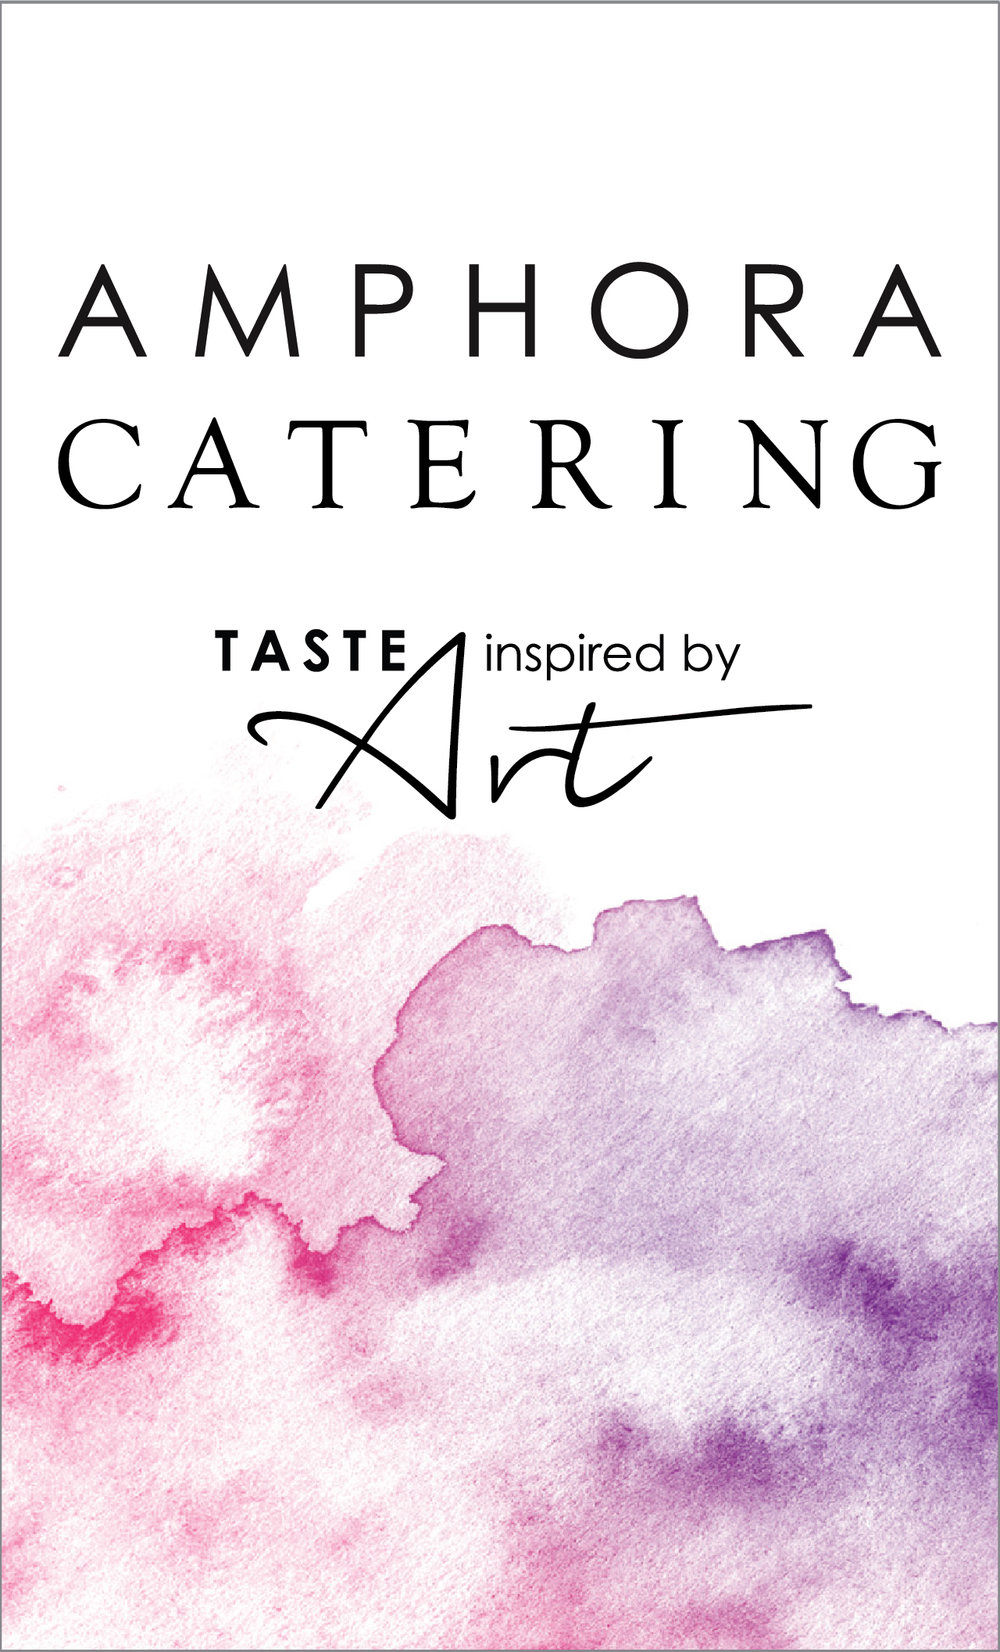 Amphora Catering Wedding flyer 2018-02 copy.jpg